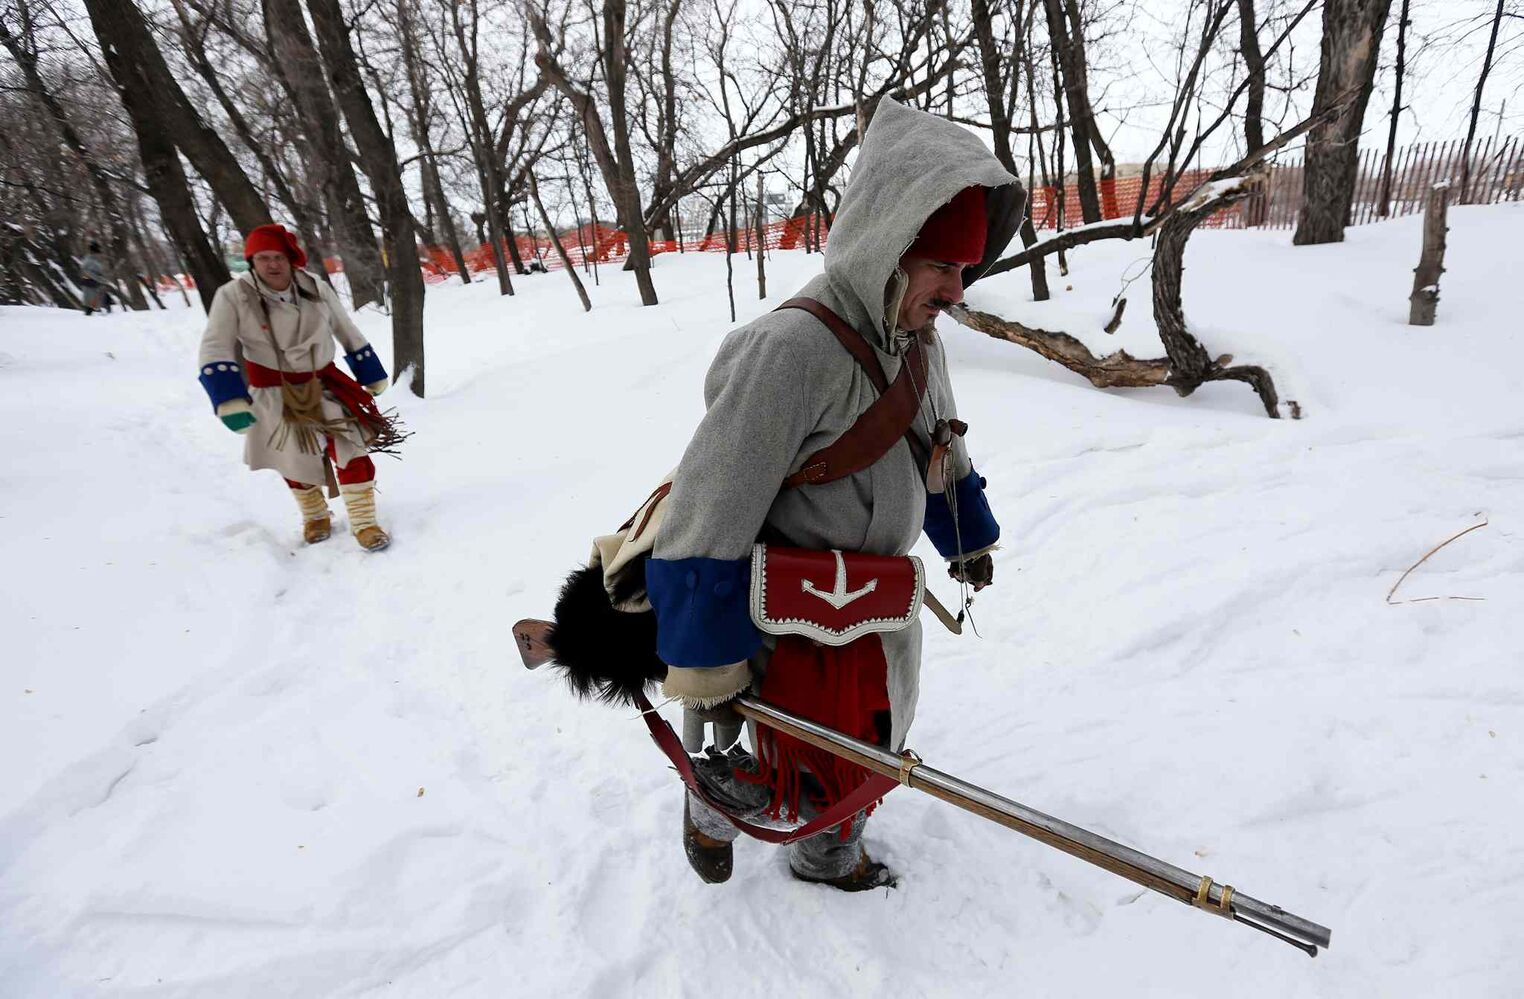 A historical reenactment between la Compagnie de La Verendrye and The Forces of Lord Selkirk at The Festival du Voyageur, Sunday, February 16, 2014. 